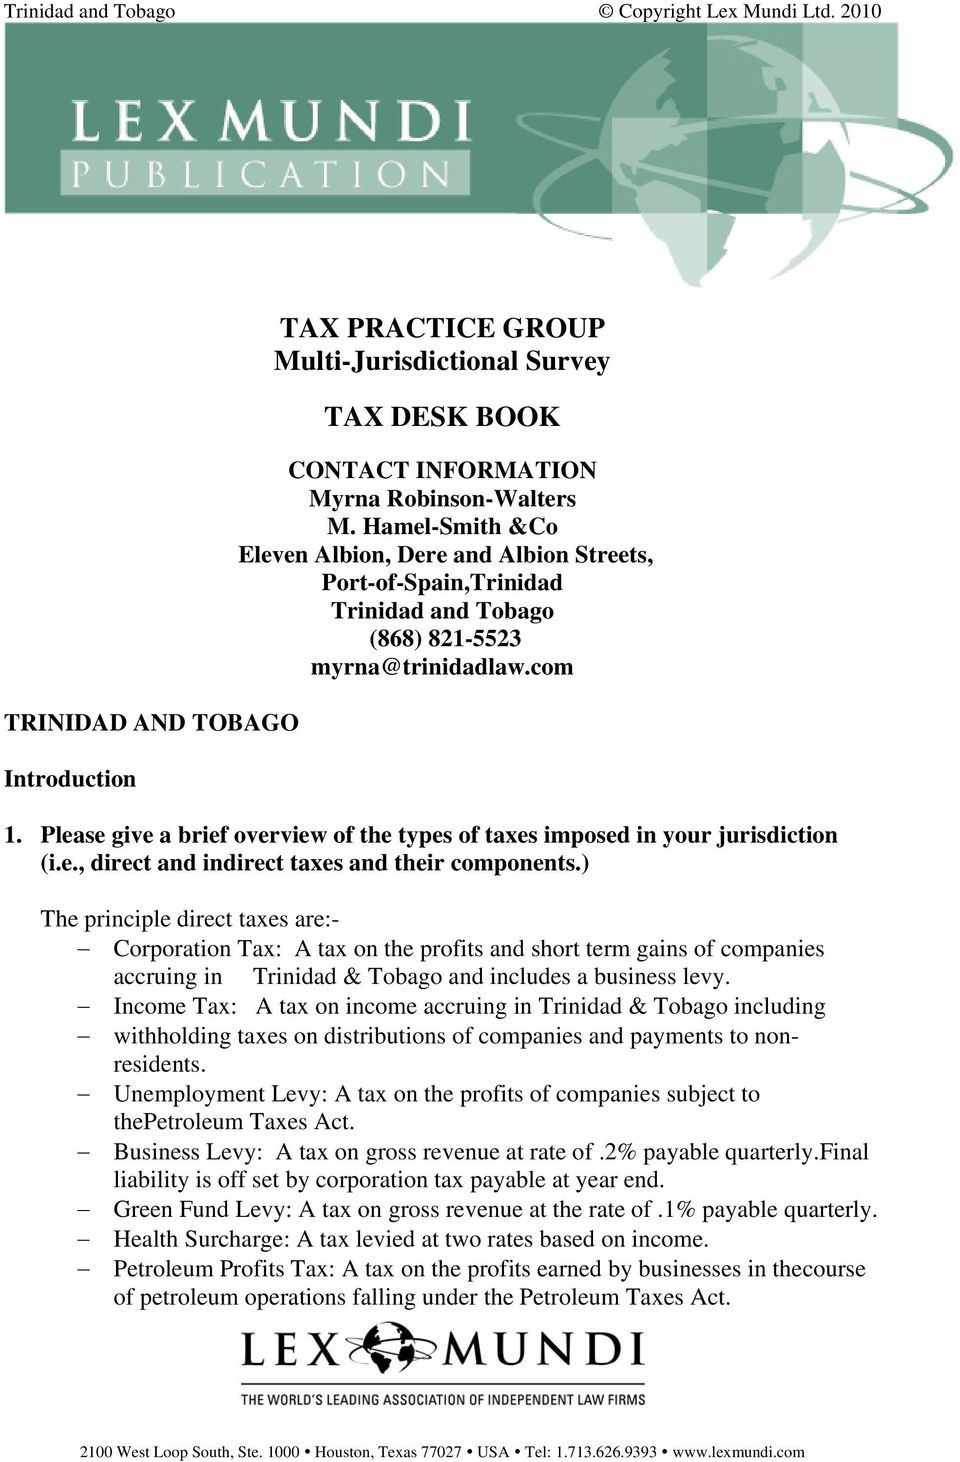 Please give a brief overview of the types of taxes imposed in your jurisdiction (i.e., direct and indirect taxes and their components.